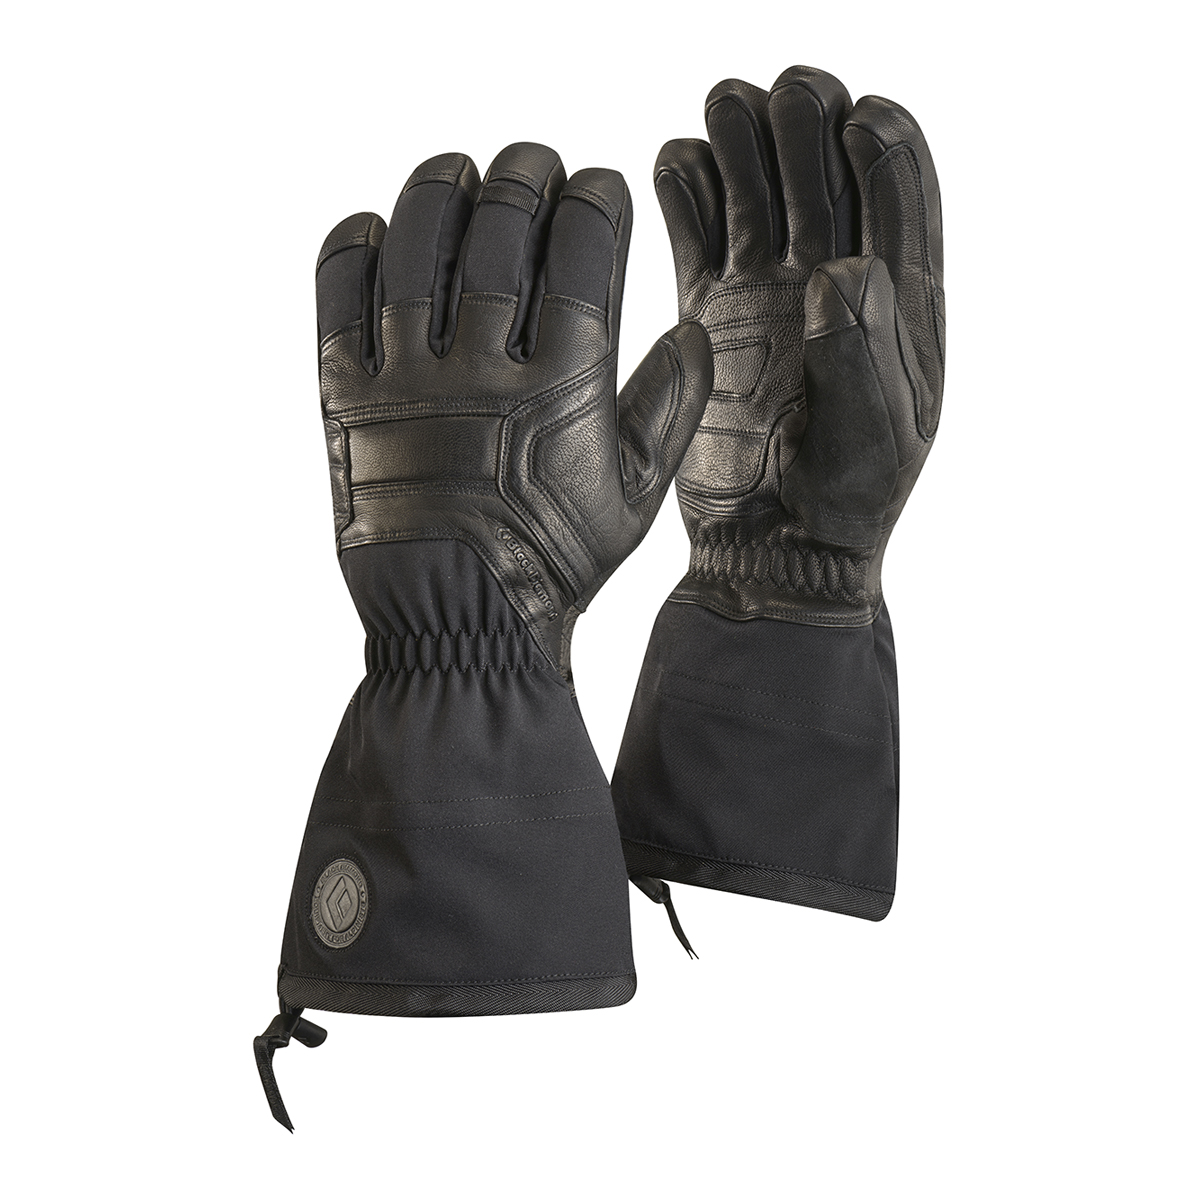 Guide Gloves - Black Diamond Gear